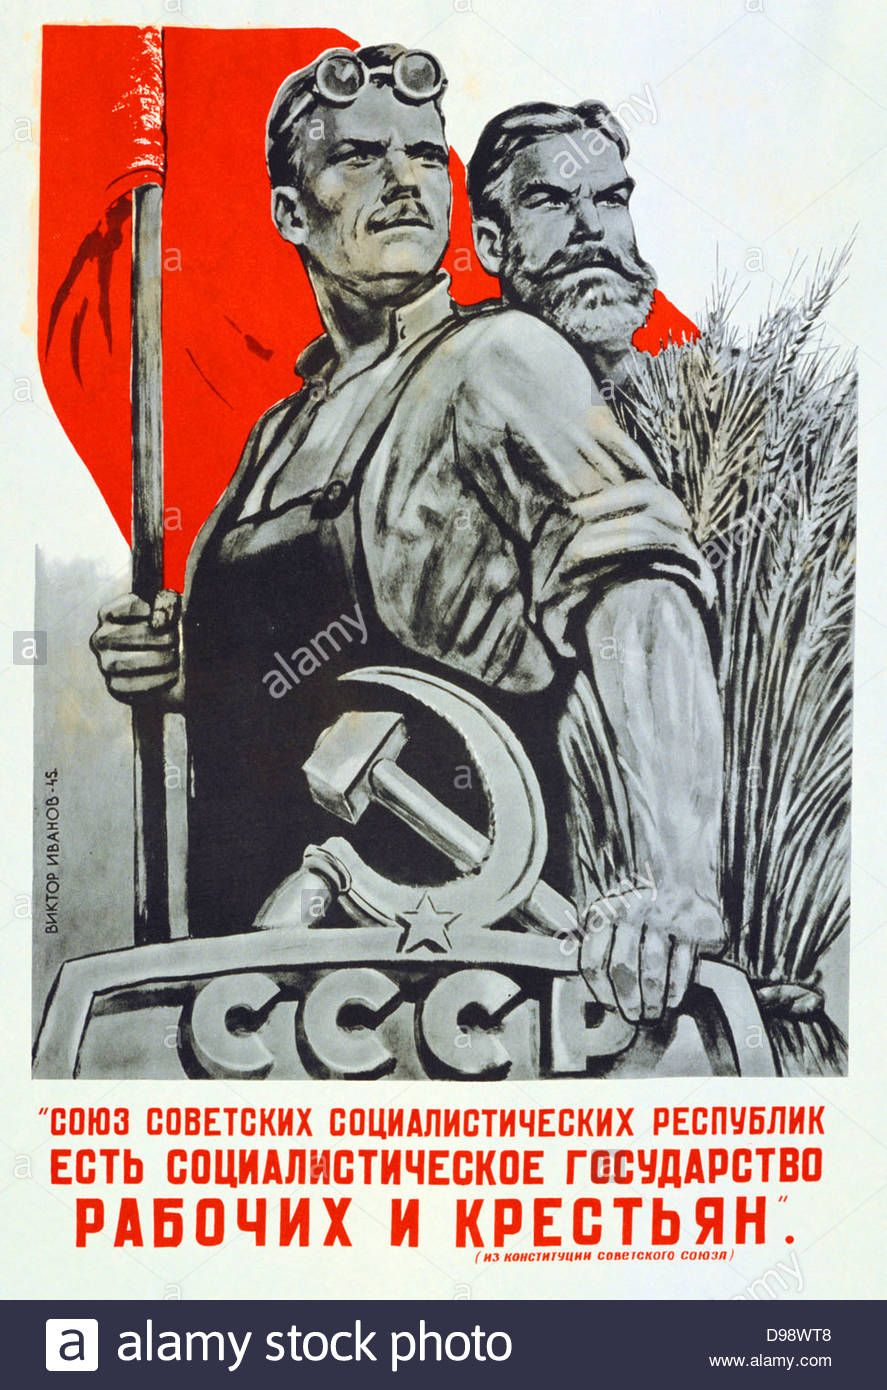 The Ussr Is The Socialist State For Factory Workers And Peasants 1945 Soviet Propaganda Poster Russia Communism Com Socialist State Propaganda Posters Ussr